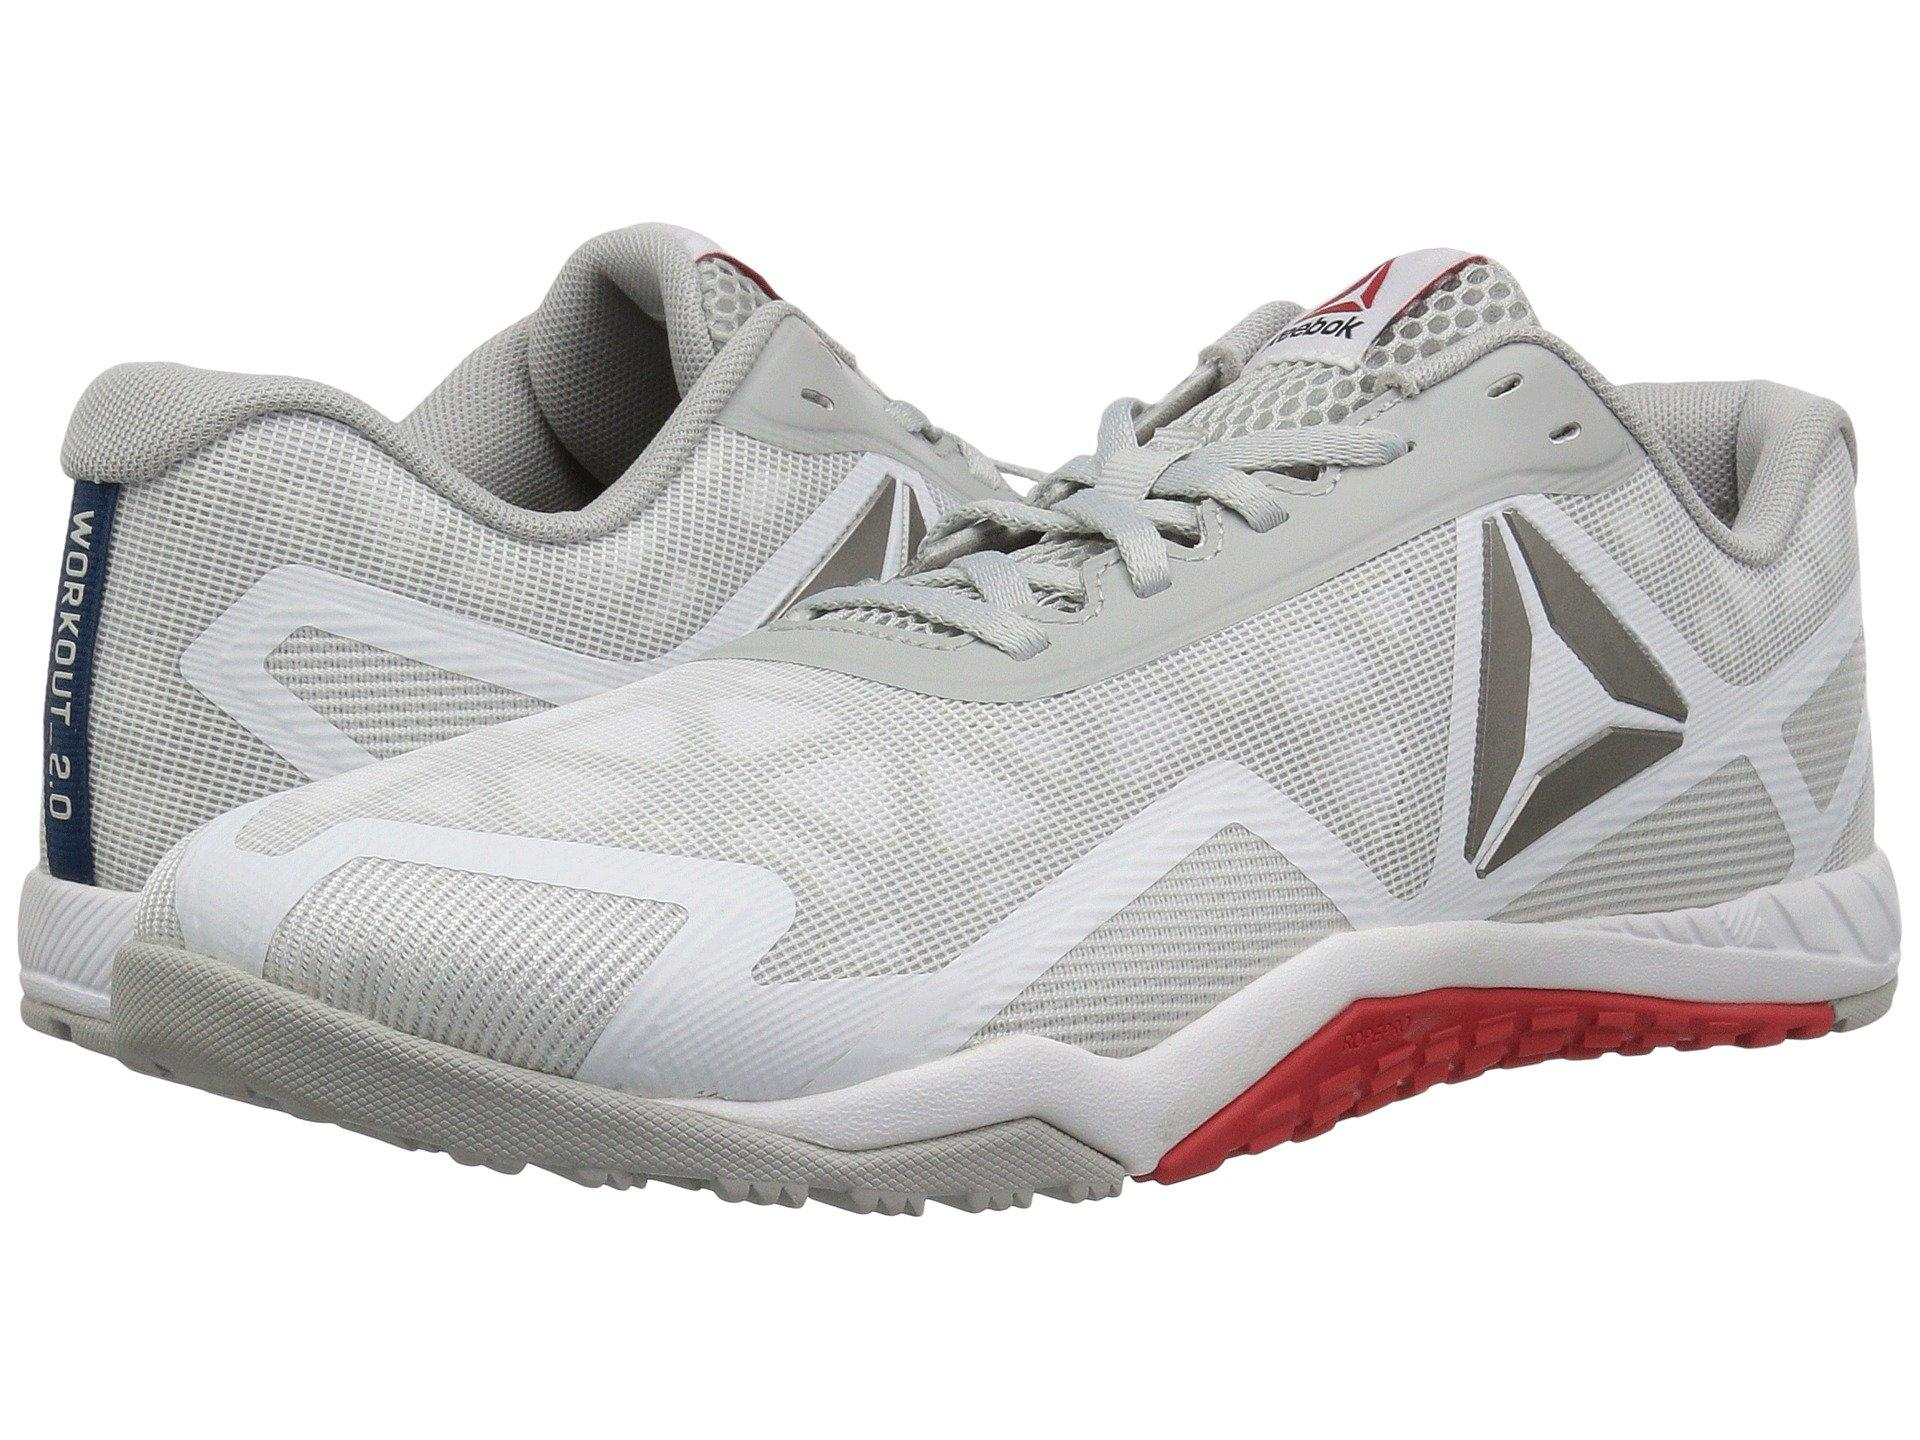 promo code fb3bf 2d0e3 Reebok Ros Workout Tr 2.0 In White Skull Grey Riot Red Noble Blue